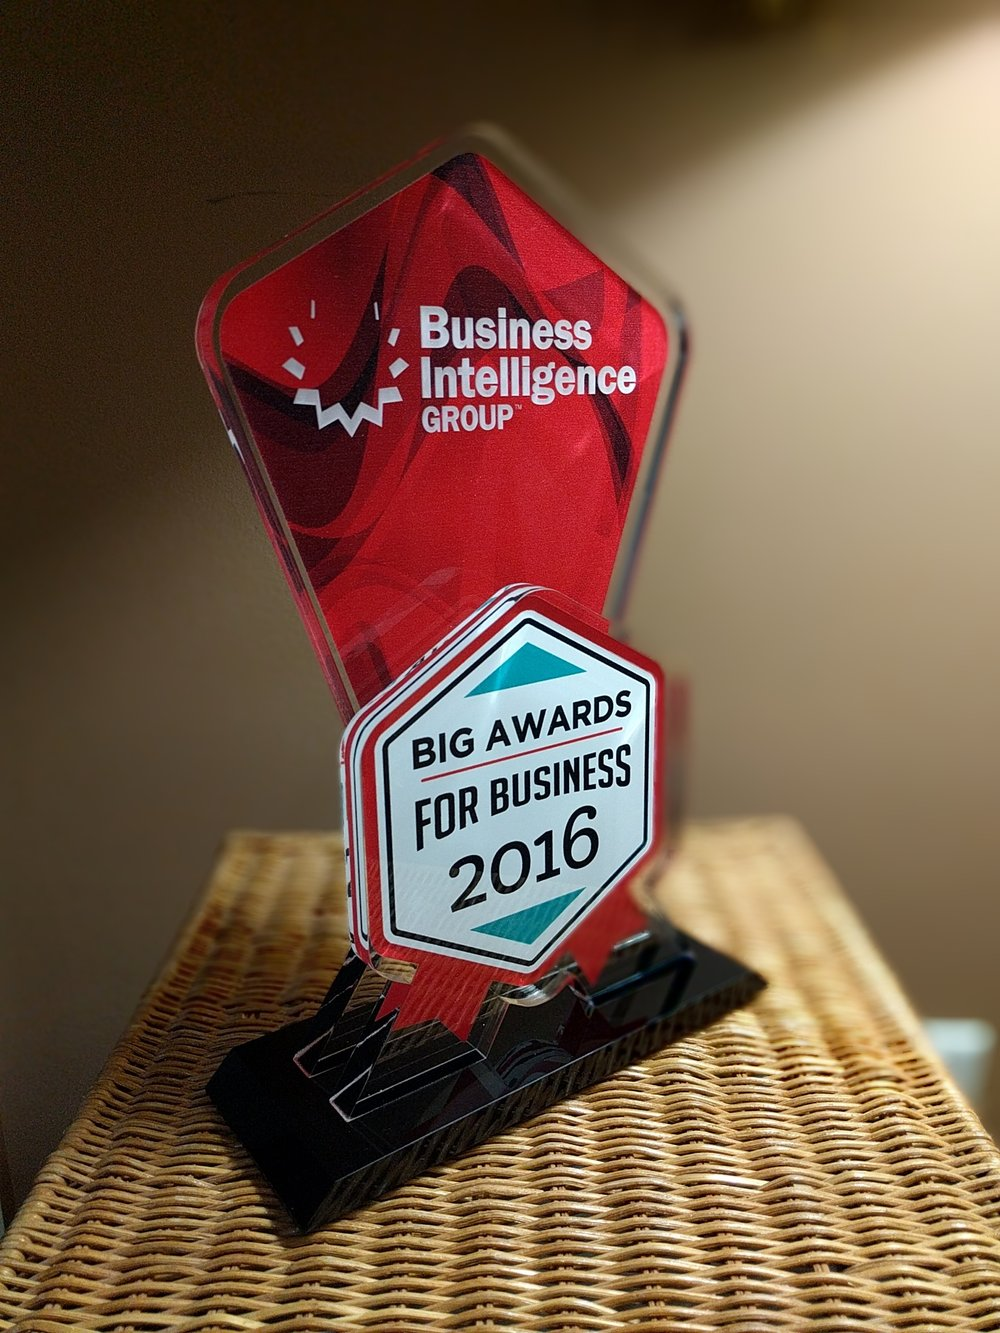 The 2016 BIG Awards for Business winners trophy